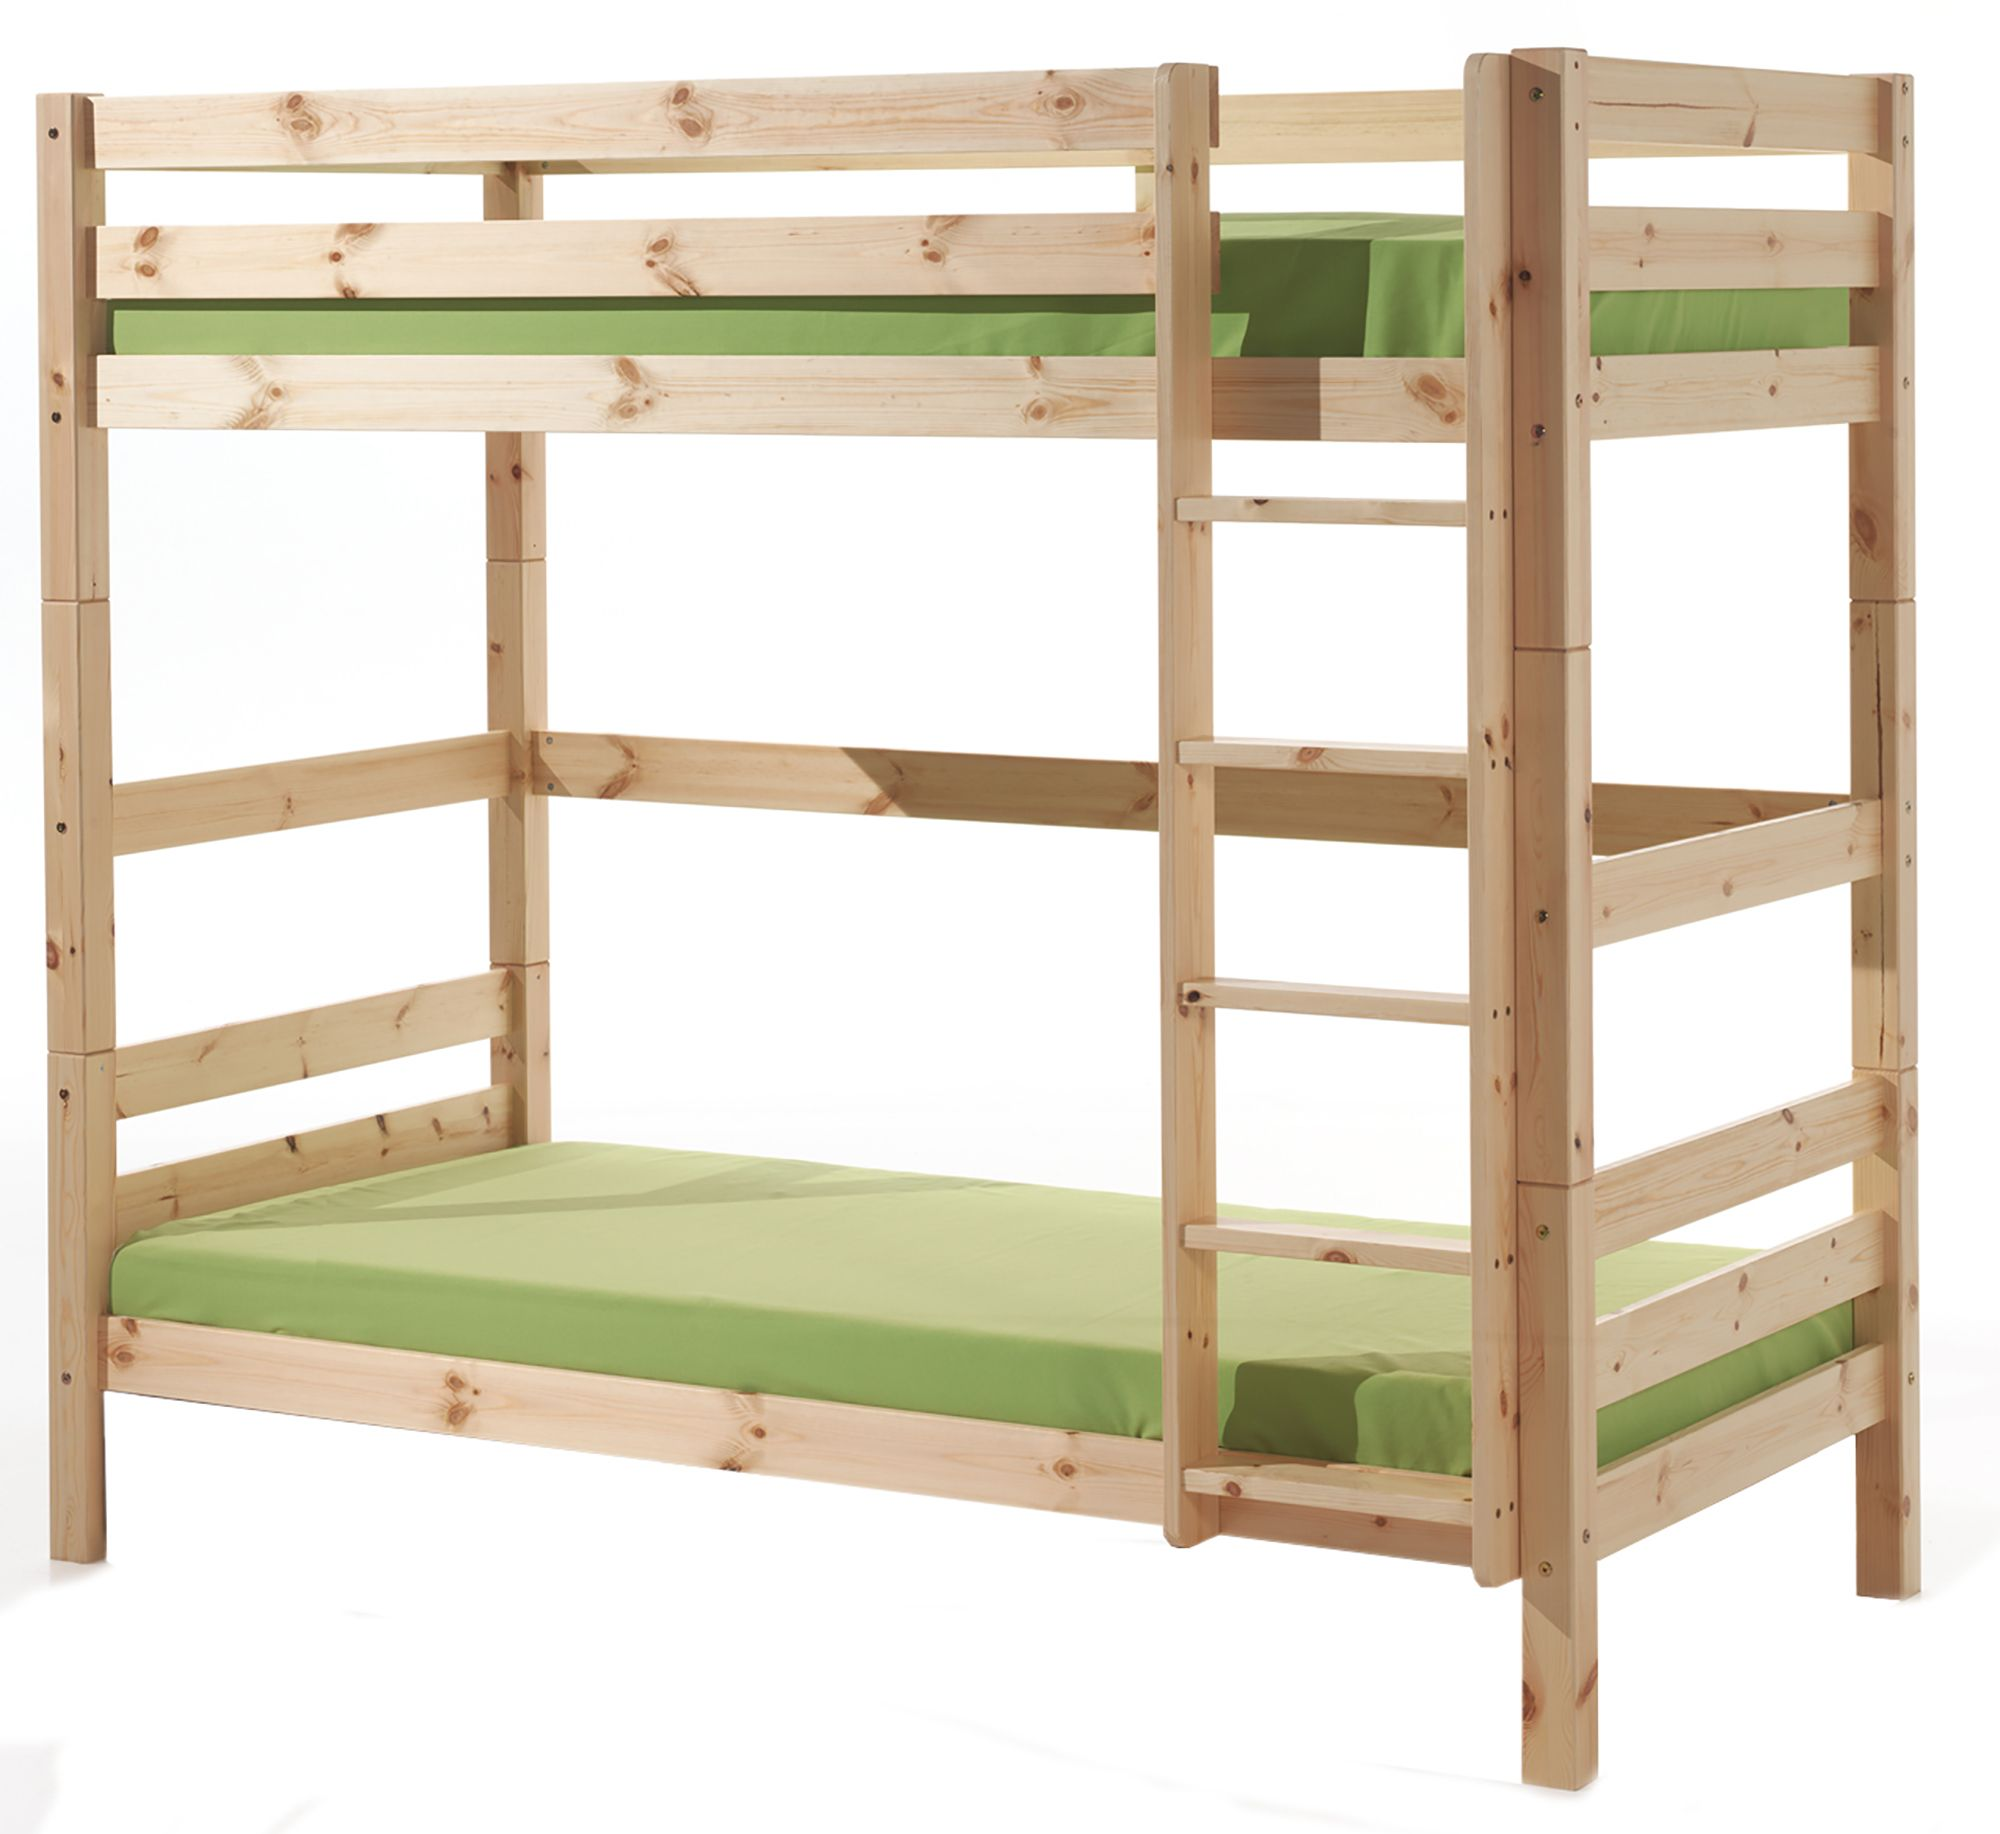 Vipack pino extra tall bunk bed natural meubles for Meuble japonais futon